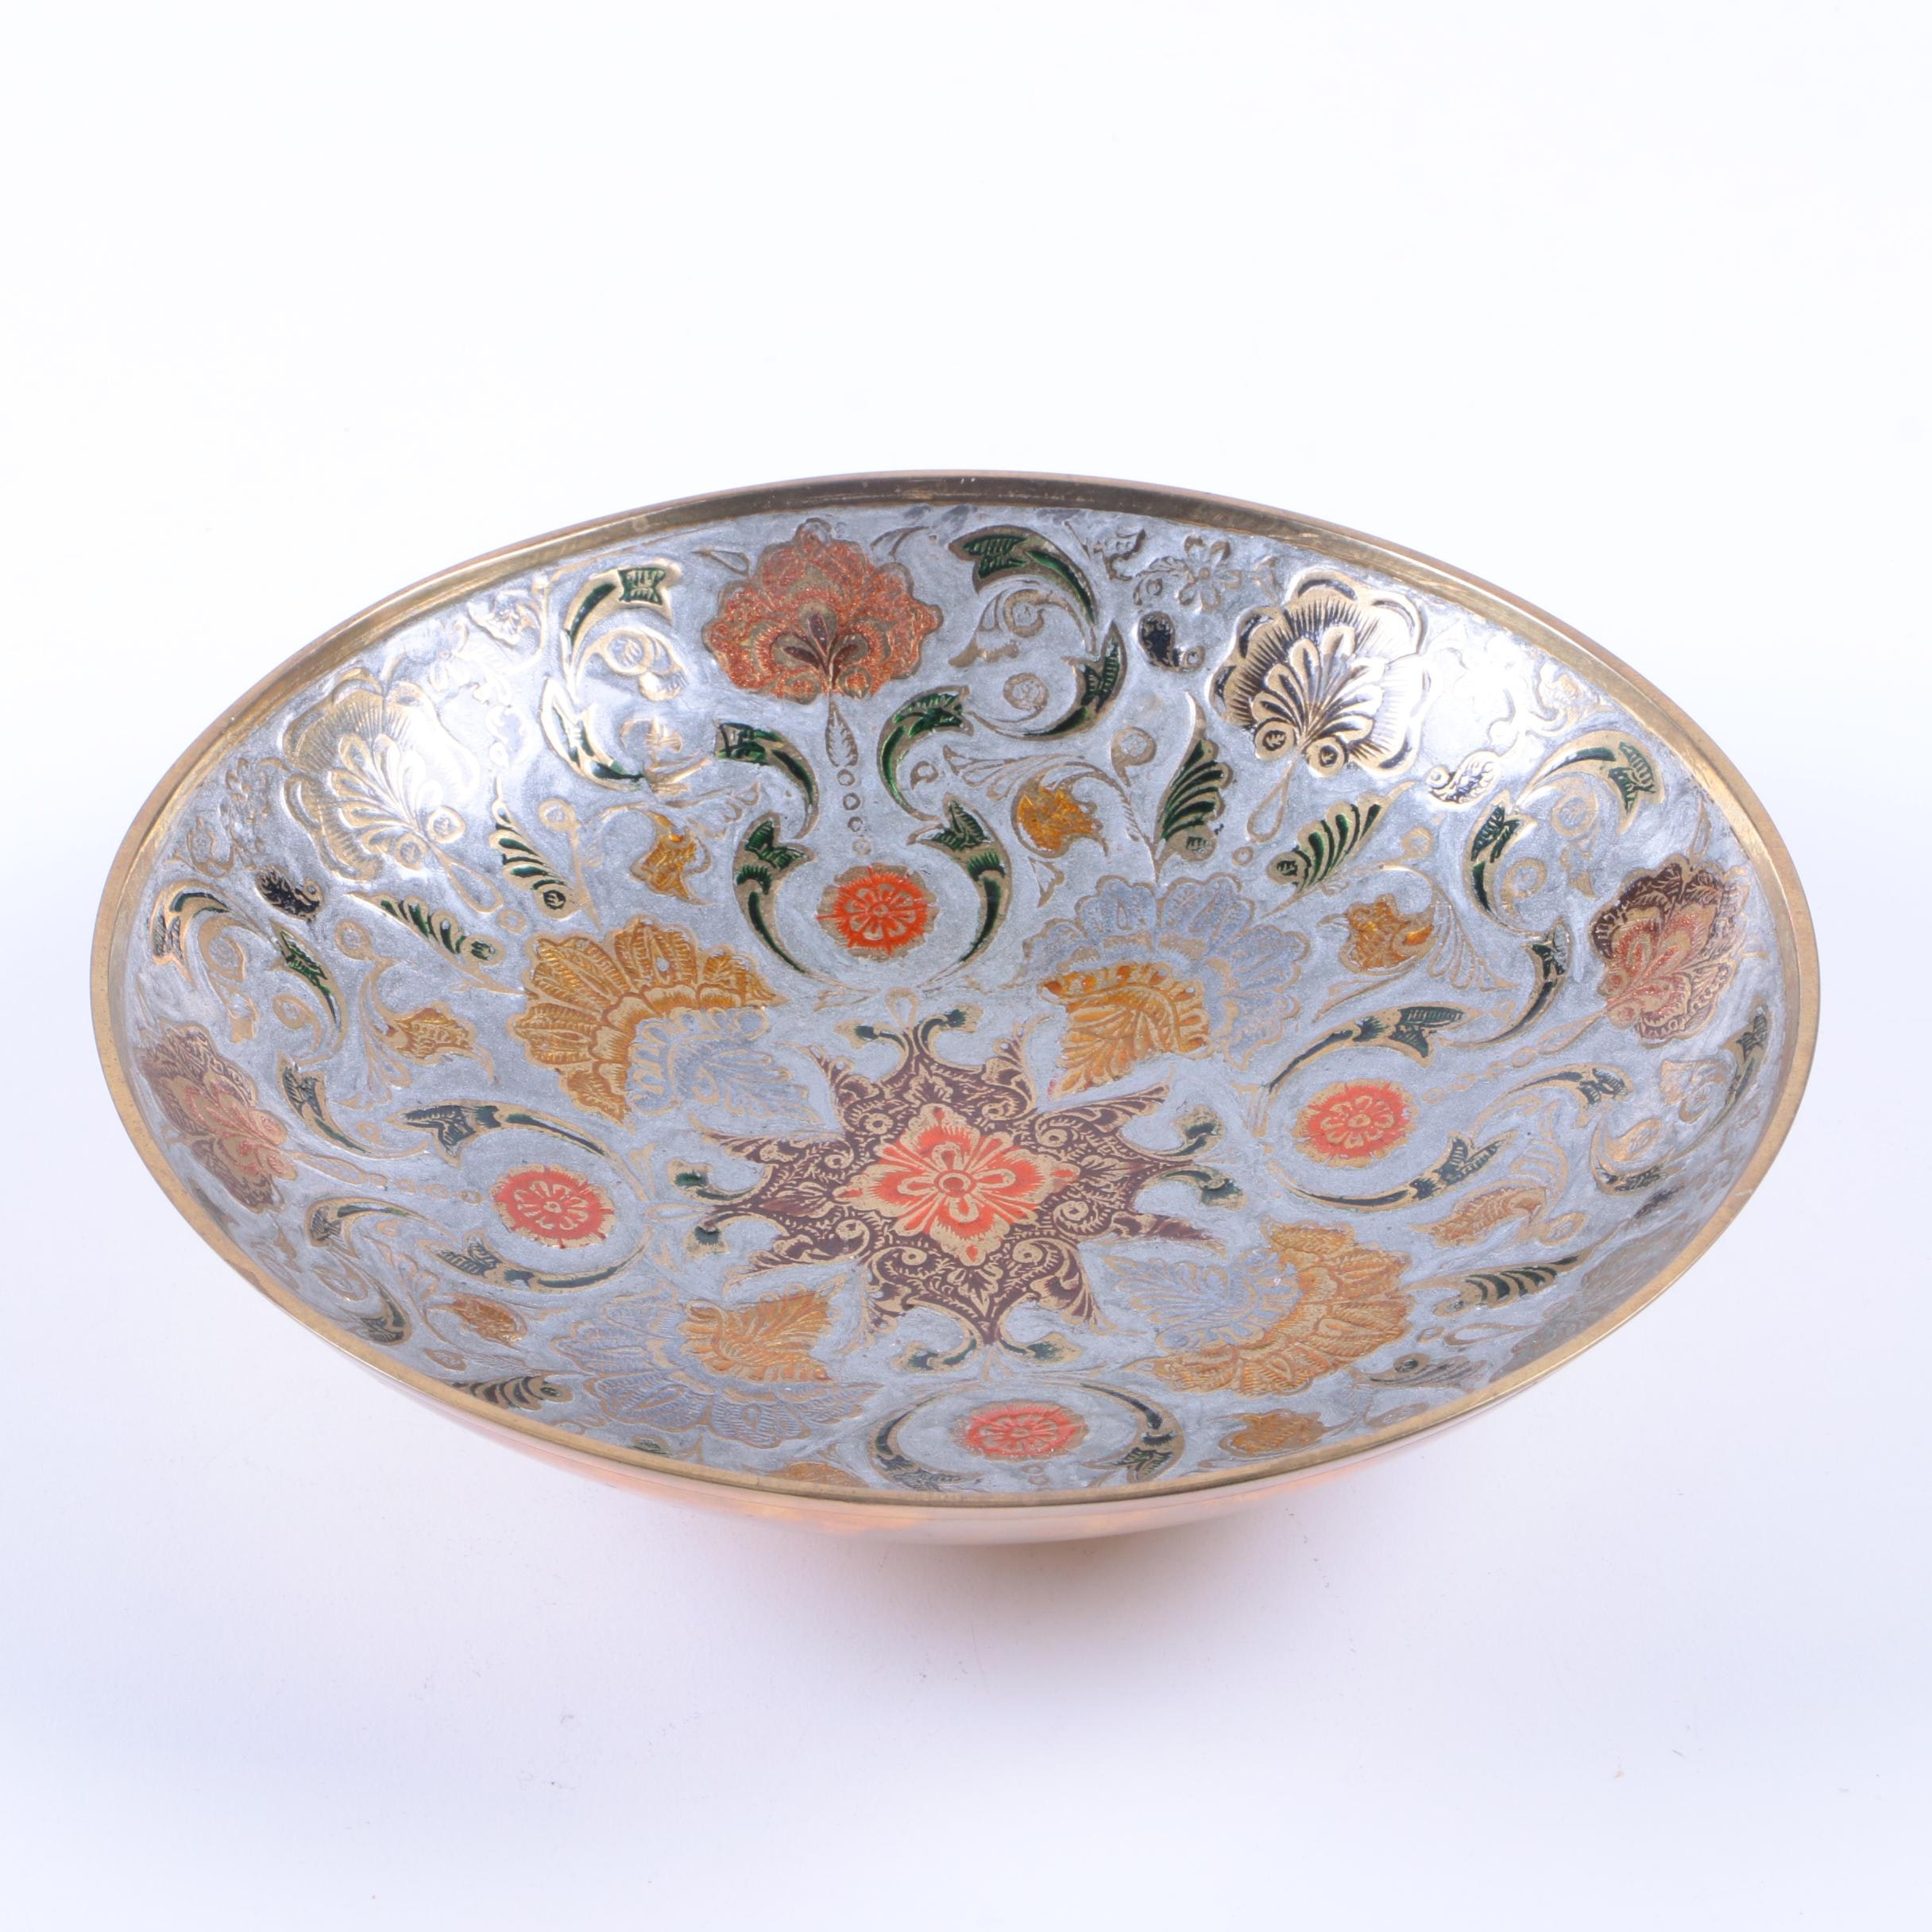 Decorative Enameled Metal Bowl